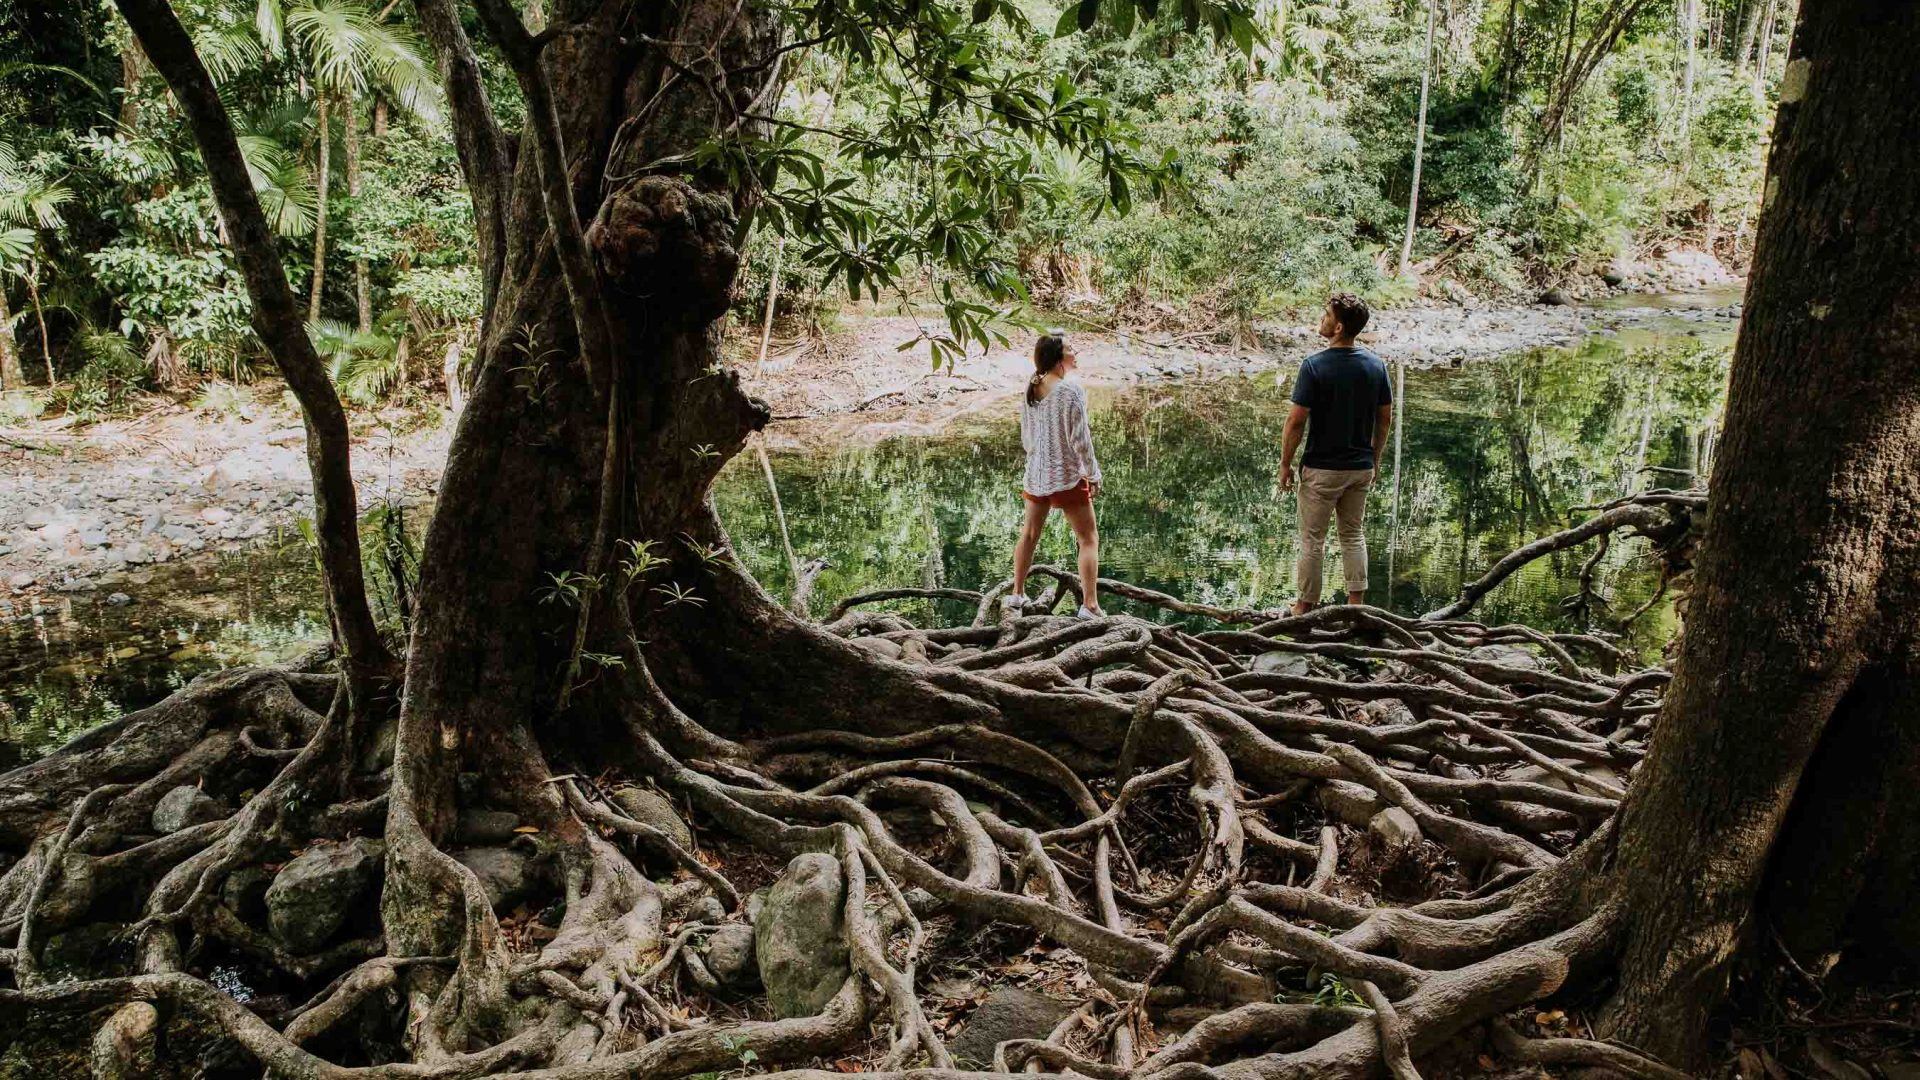 Two people stand by a tree with as complex root system.